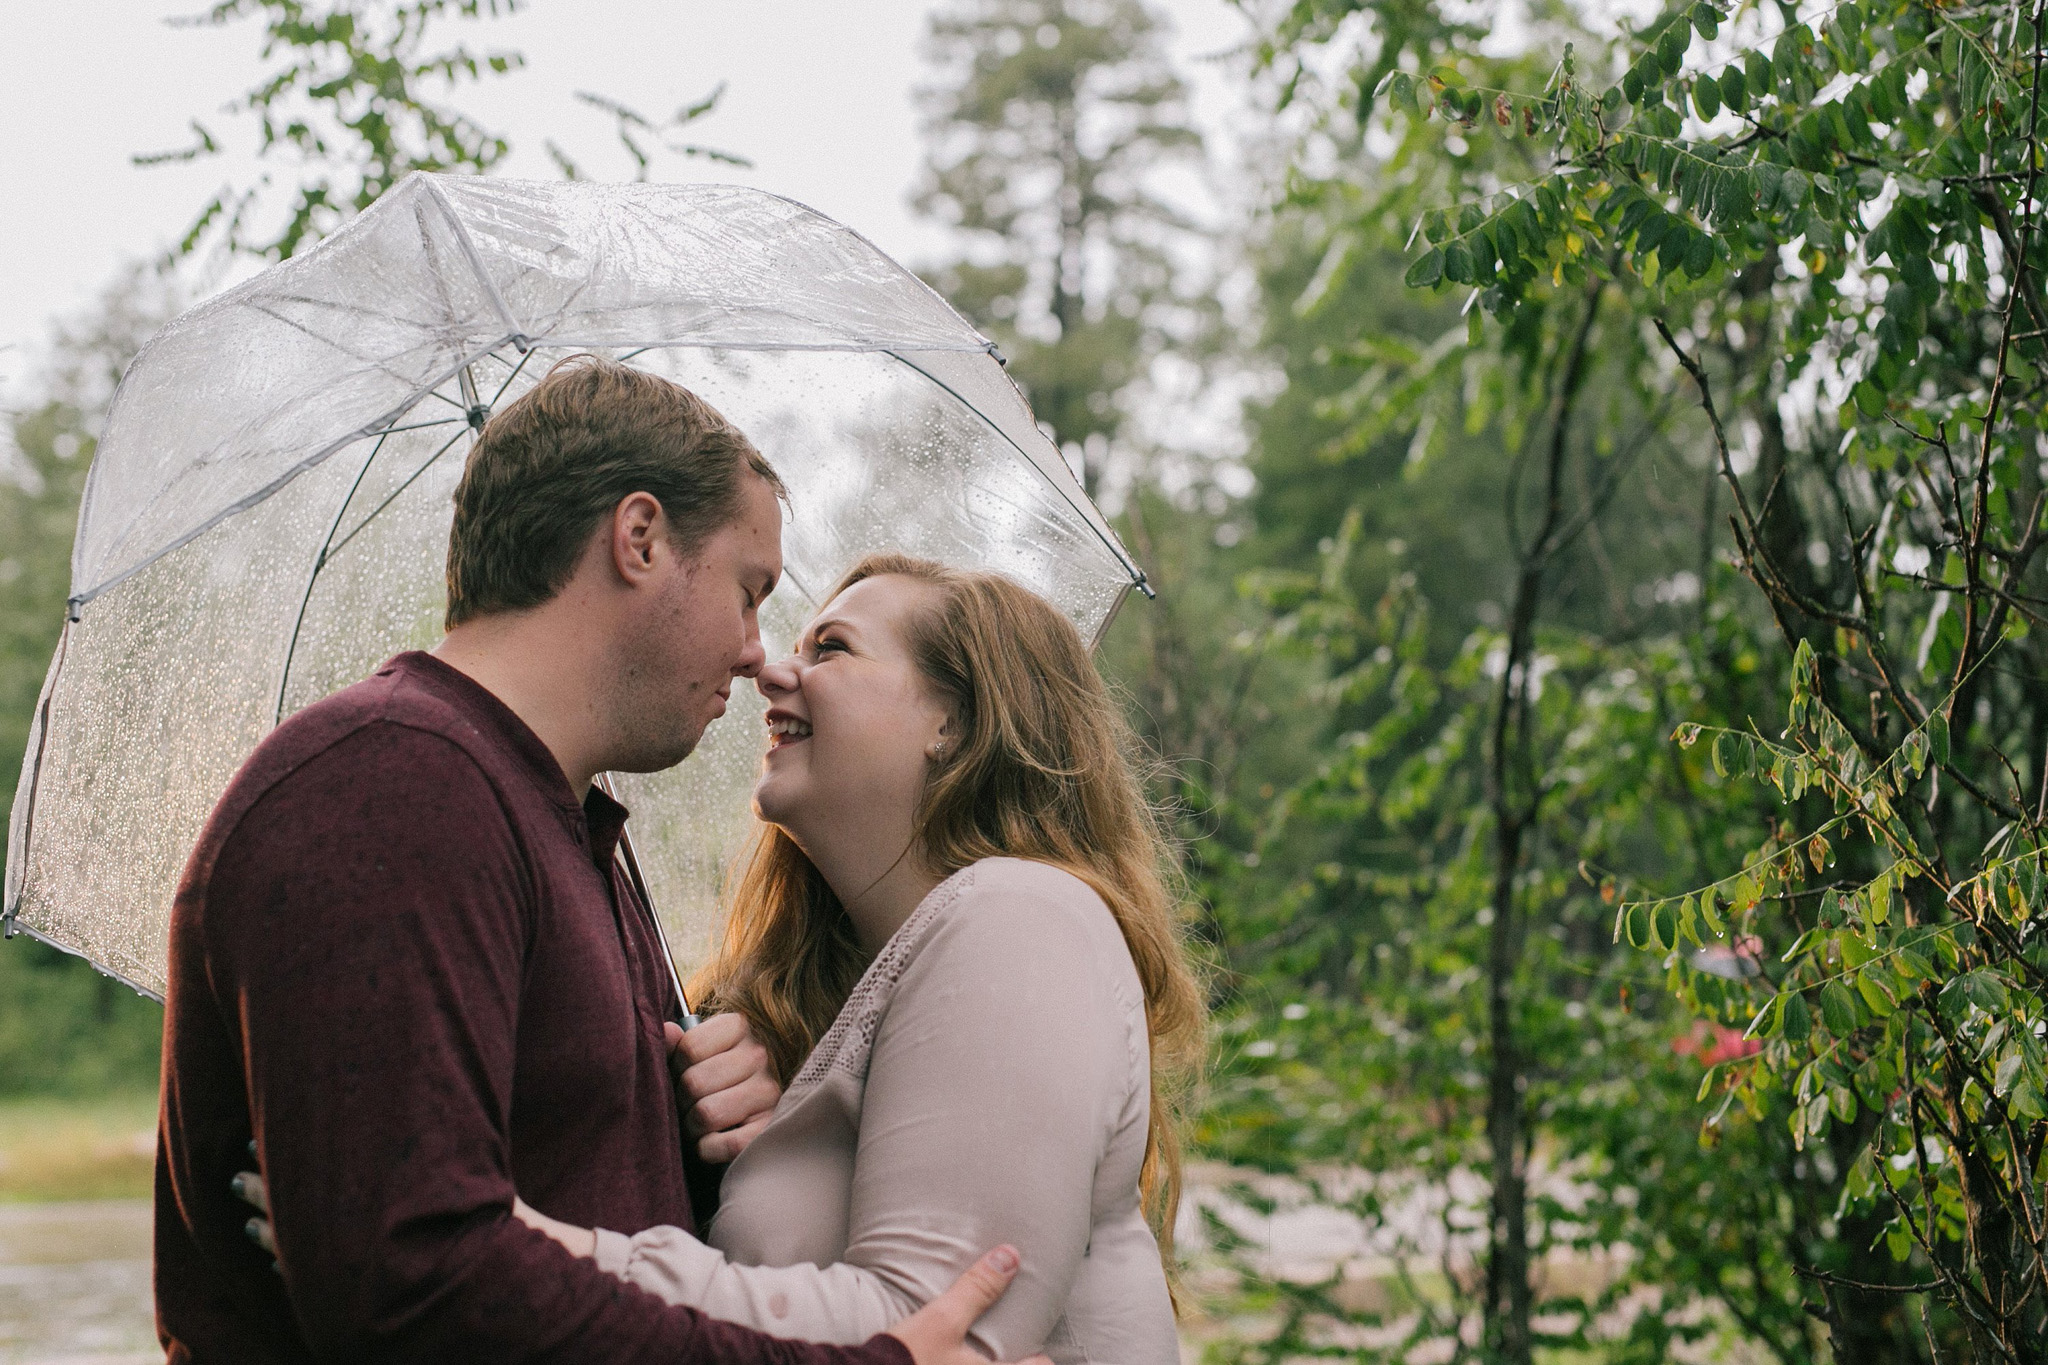 mogollon rim engagement session in the rain with clear umbrella laughing